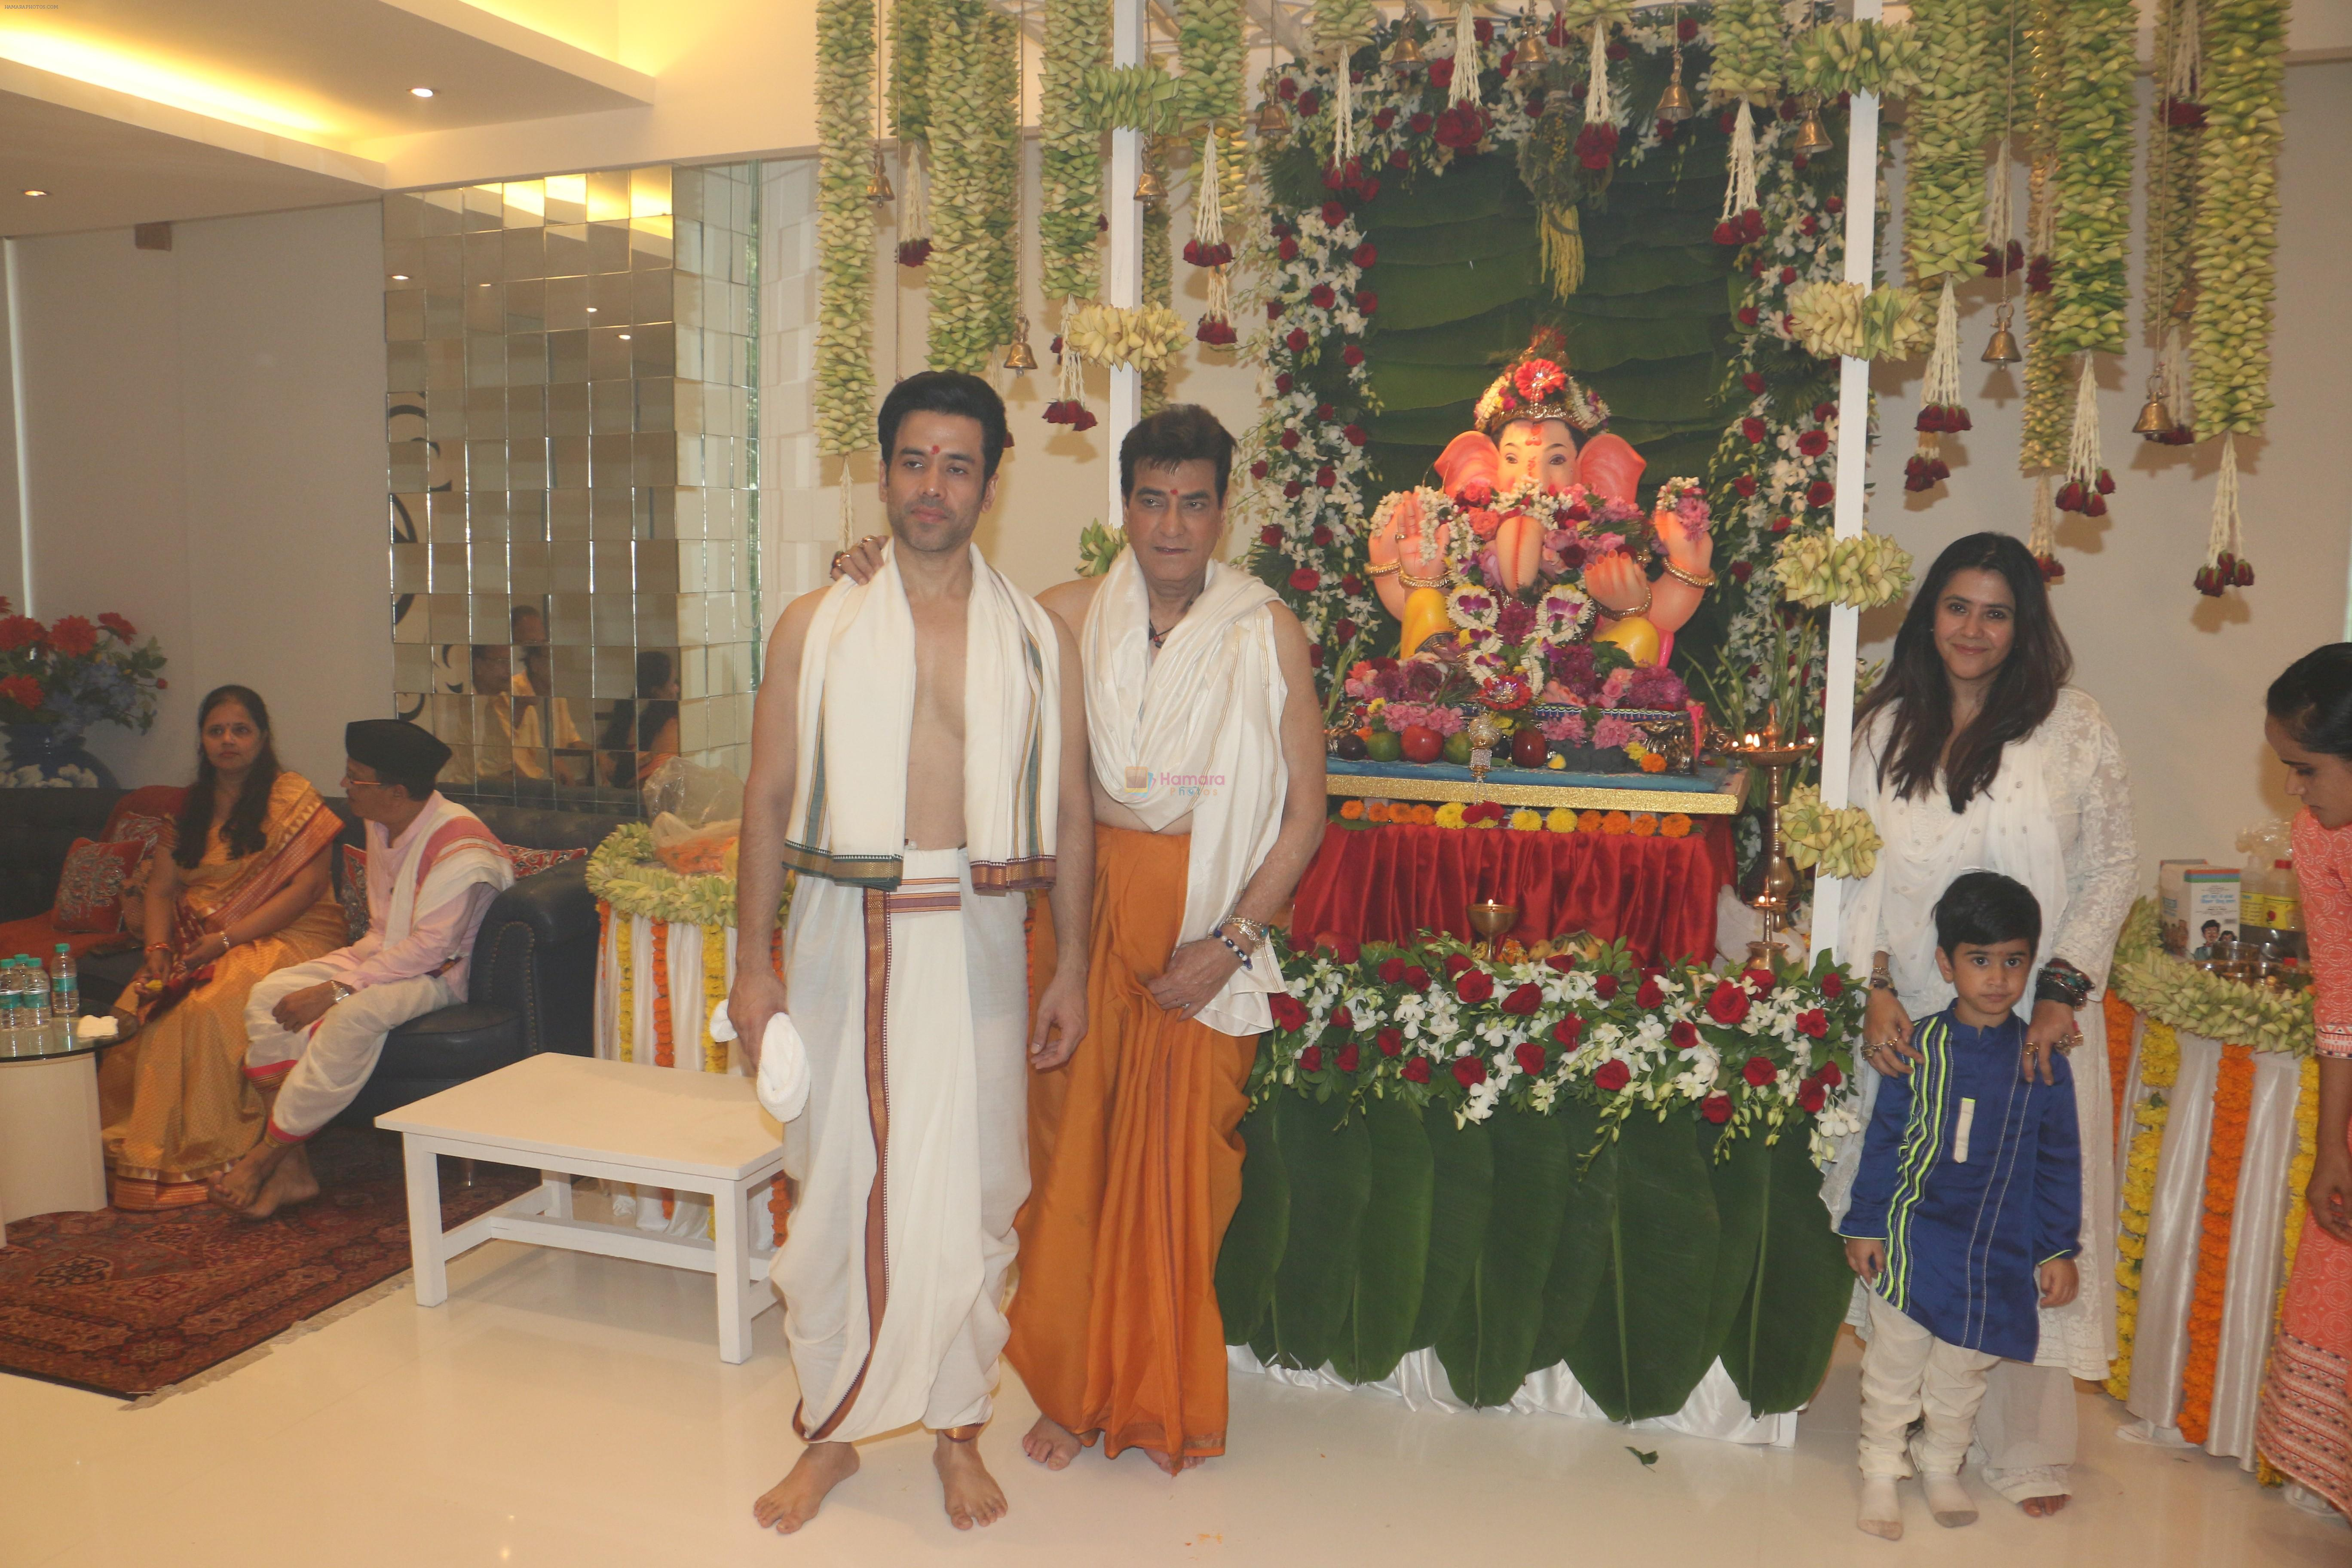 Jeetendra, Tusshar Kapoor, Ekta Kapoor's Ganpati celebration at his house on 2nd Sept 2019